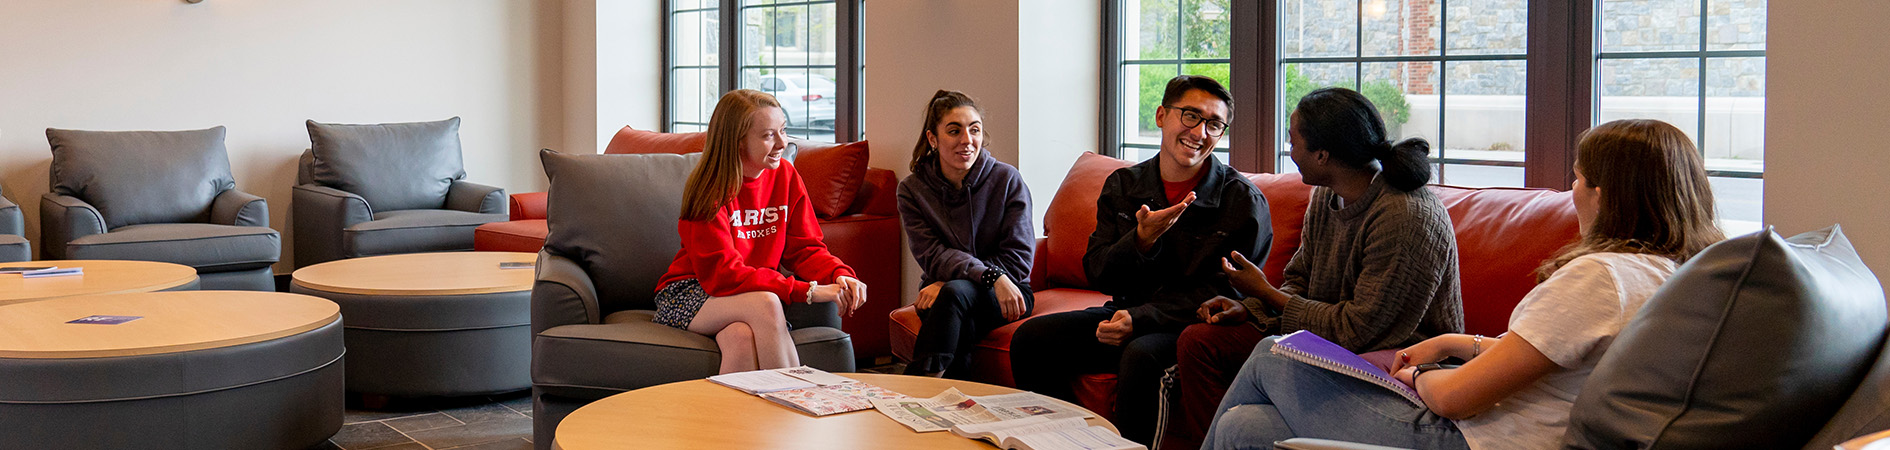 Photo of students socializing in residence hall lounge area